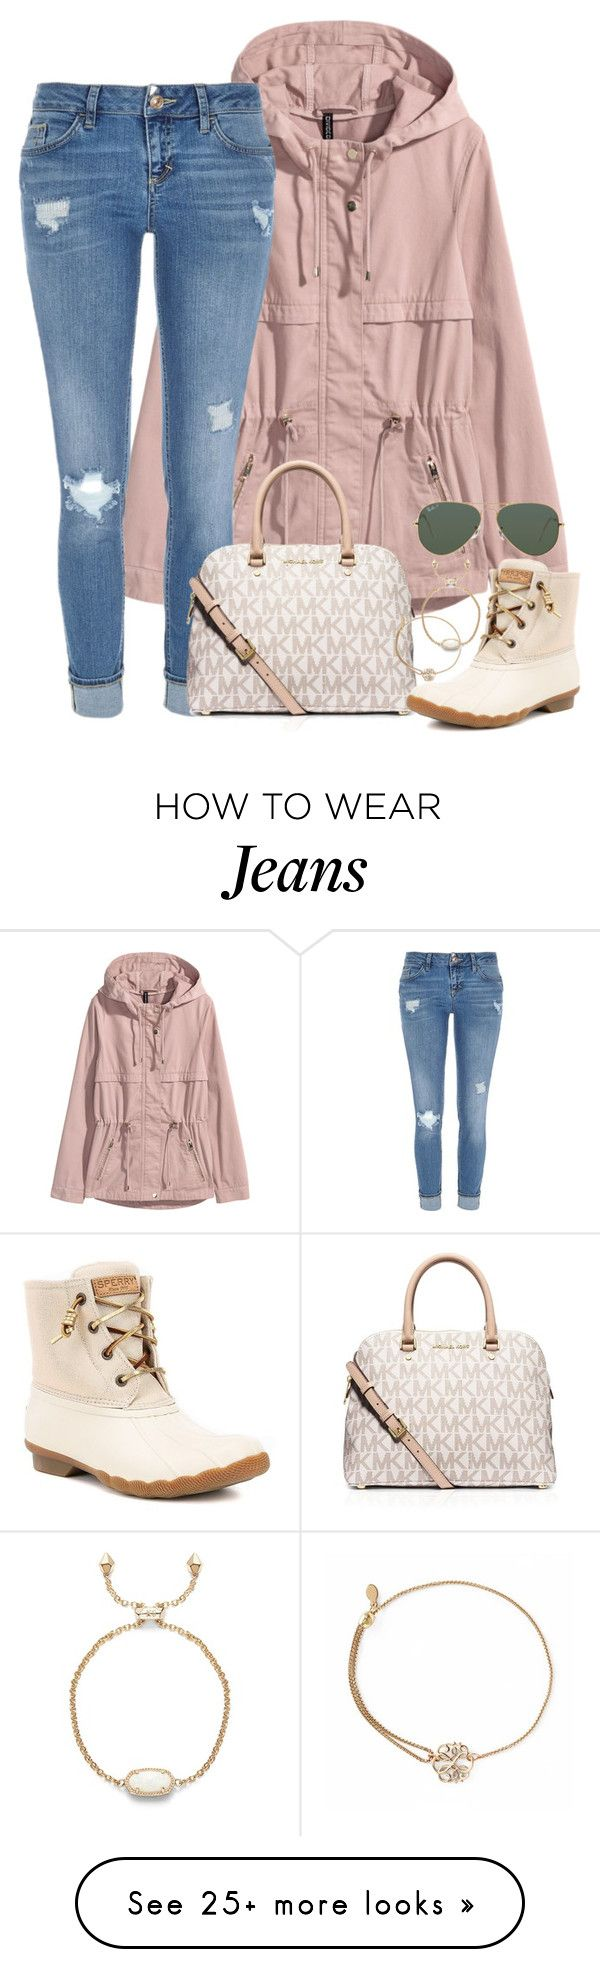 """""""please please please read description!!!"""" by kaley-ii on Polyvore featuring River Island, MICHAEL Michael Kors, Sperry, Alex and Ani, Kendra Scott and Ray-Ban"""